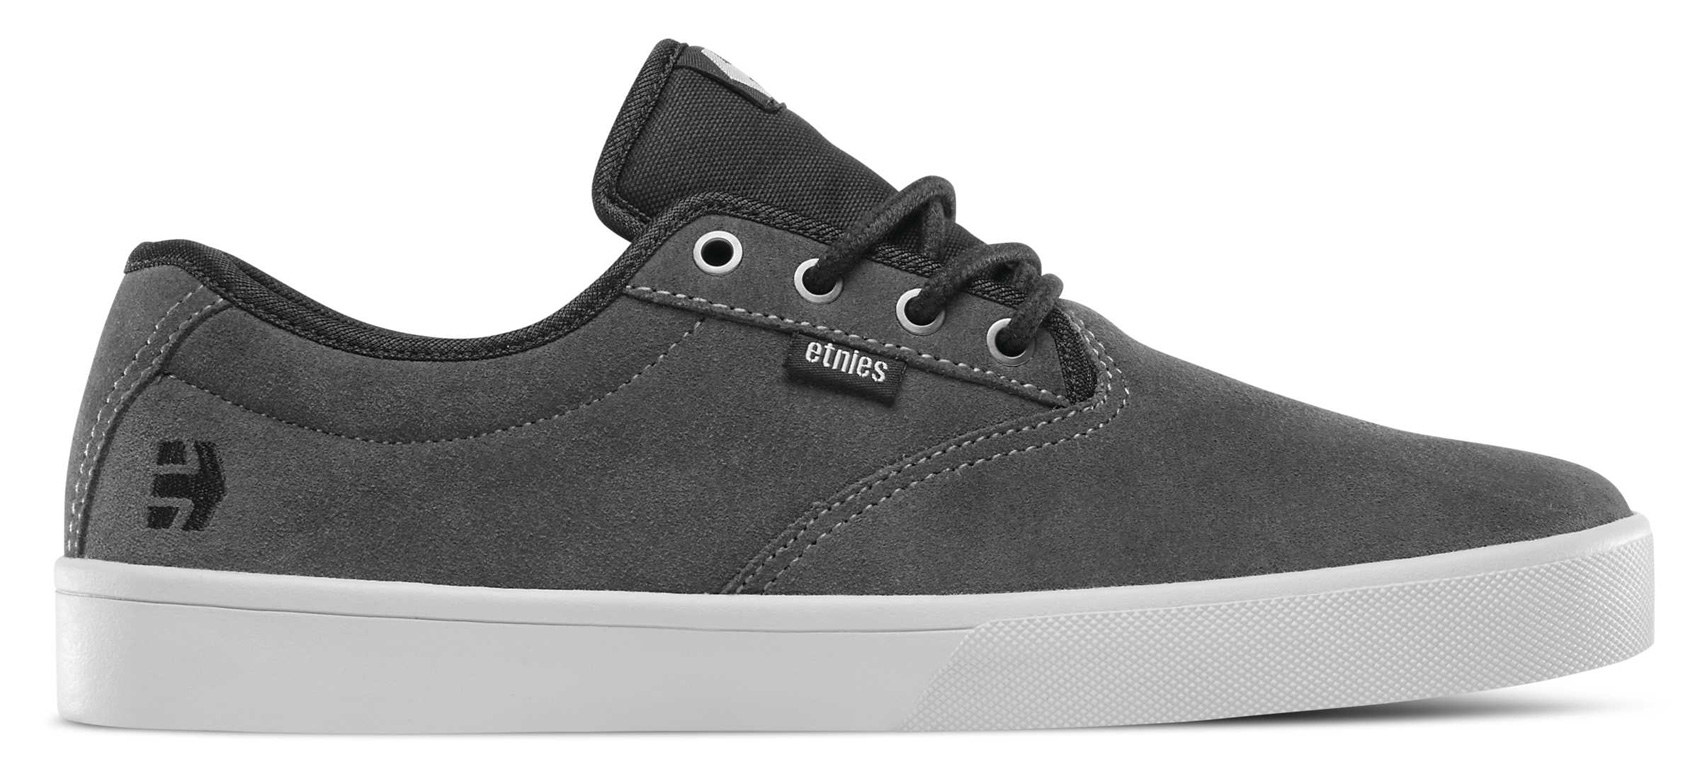 Buy Etnies Shoes